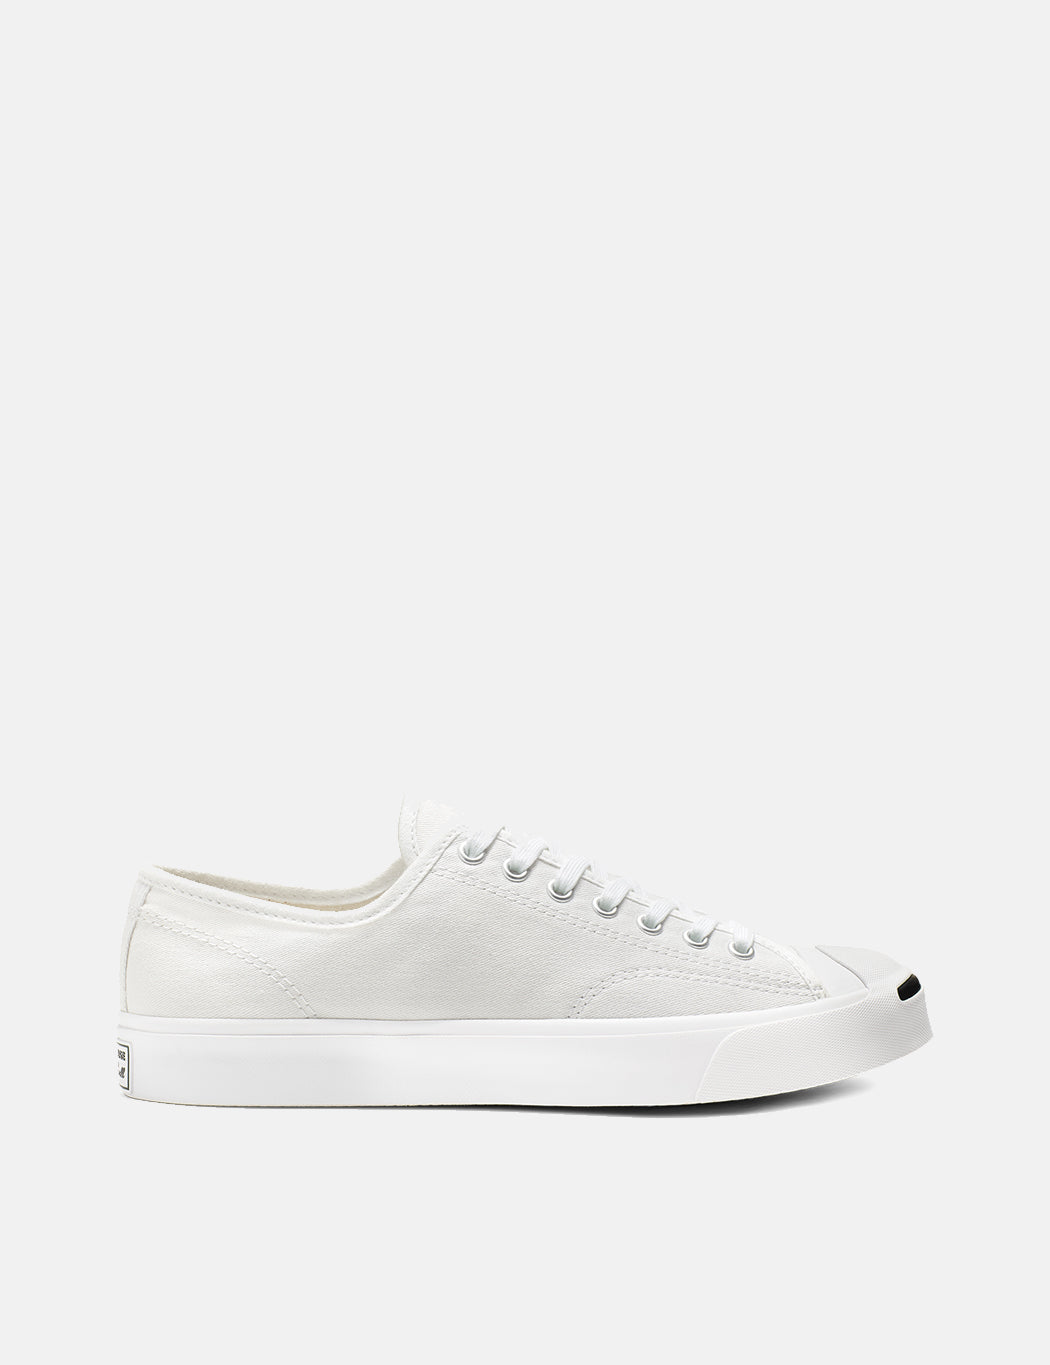 9072b6803ded Converse Jack Purcell 164057C (Canvas) - White White